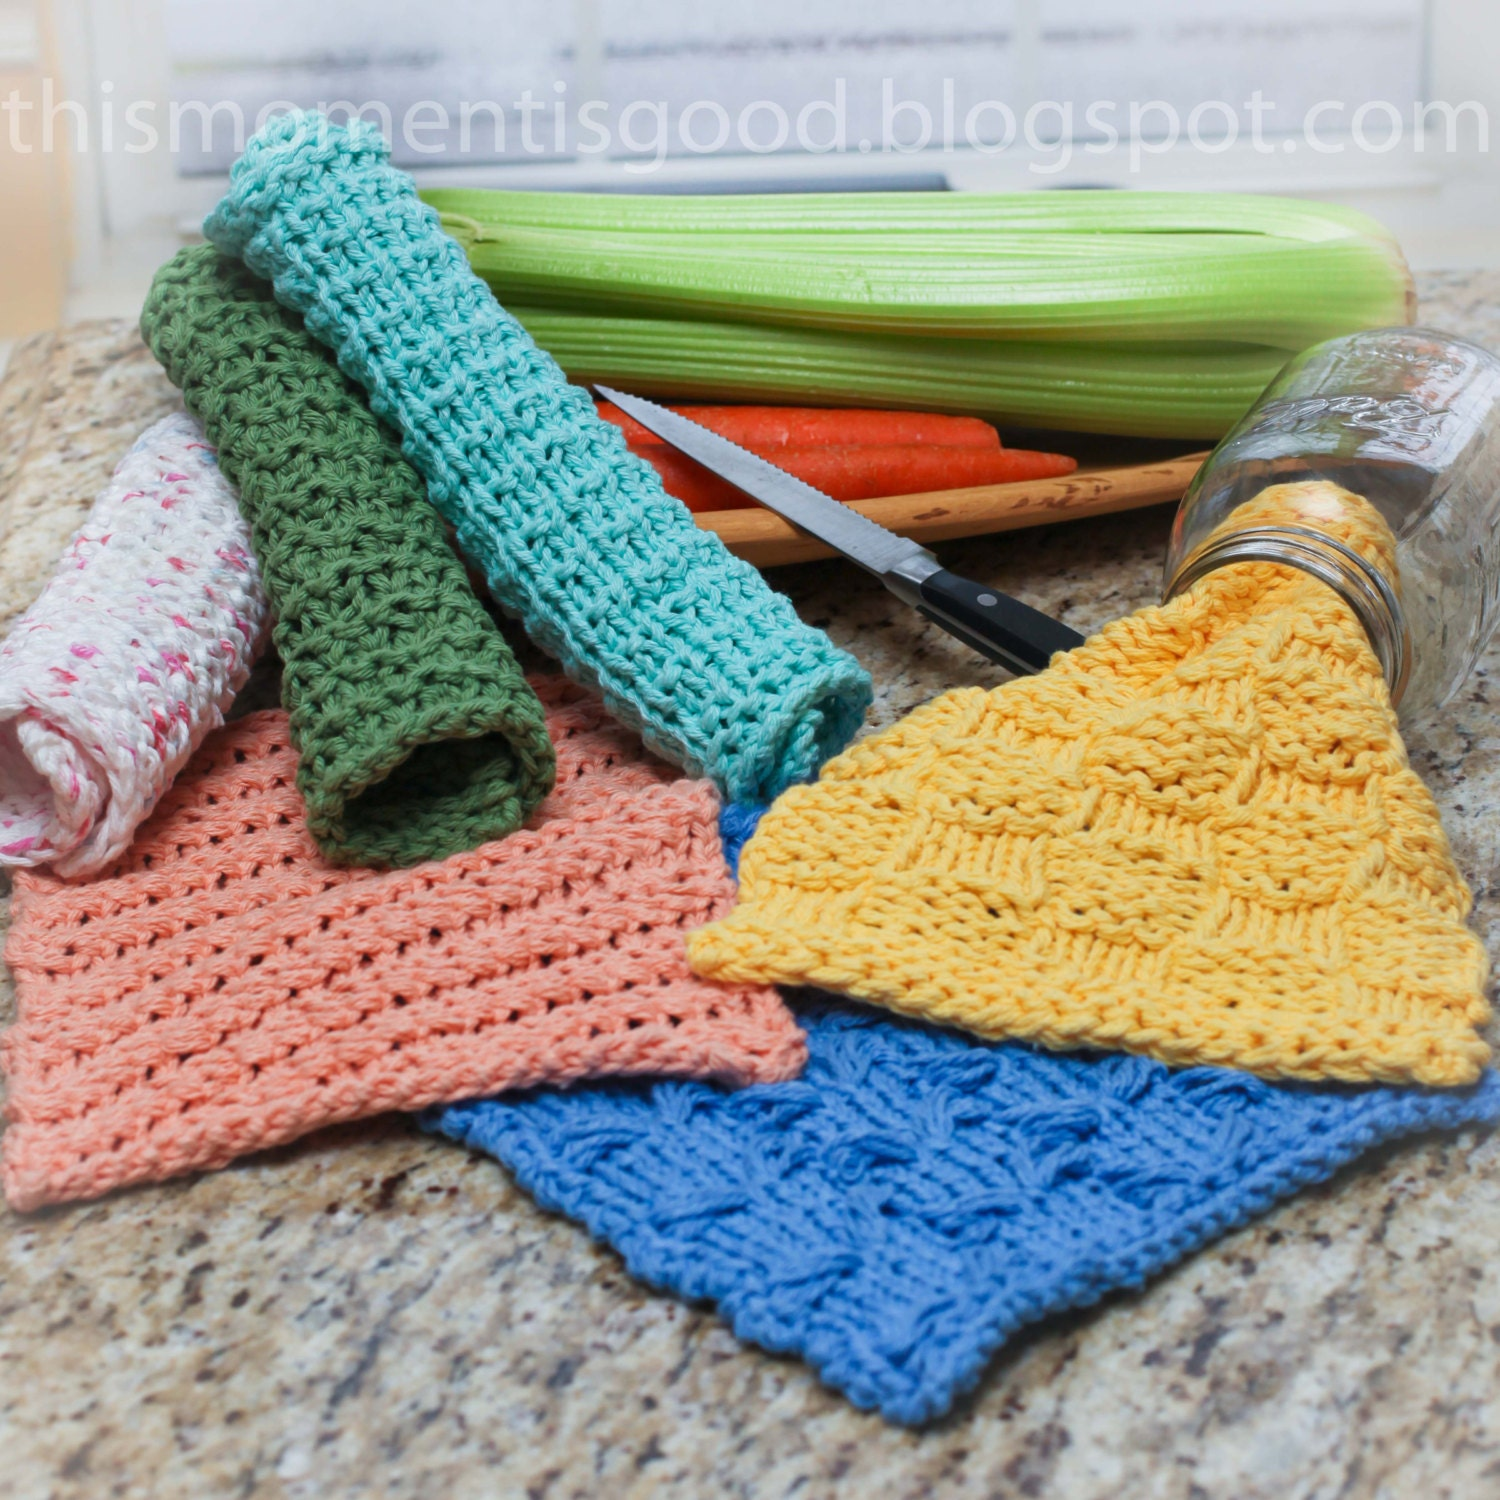 Loom Knit Wash Cloth Patterns. 7 unique by ThisMomentisGood